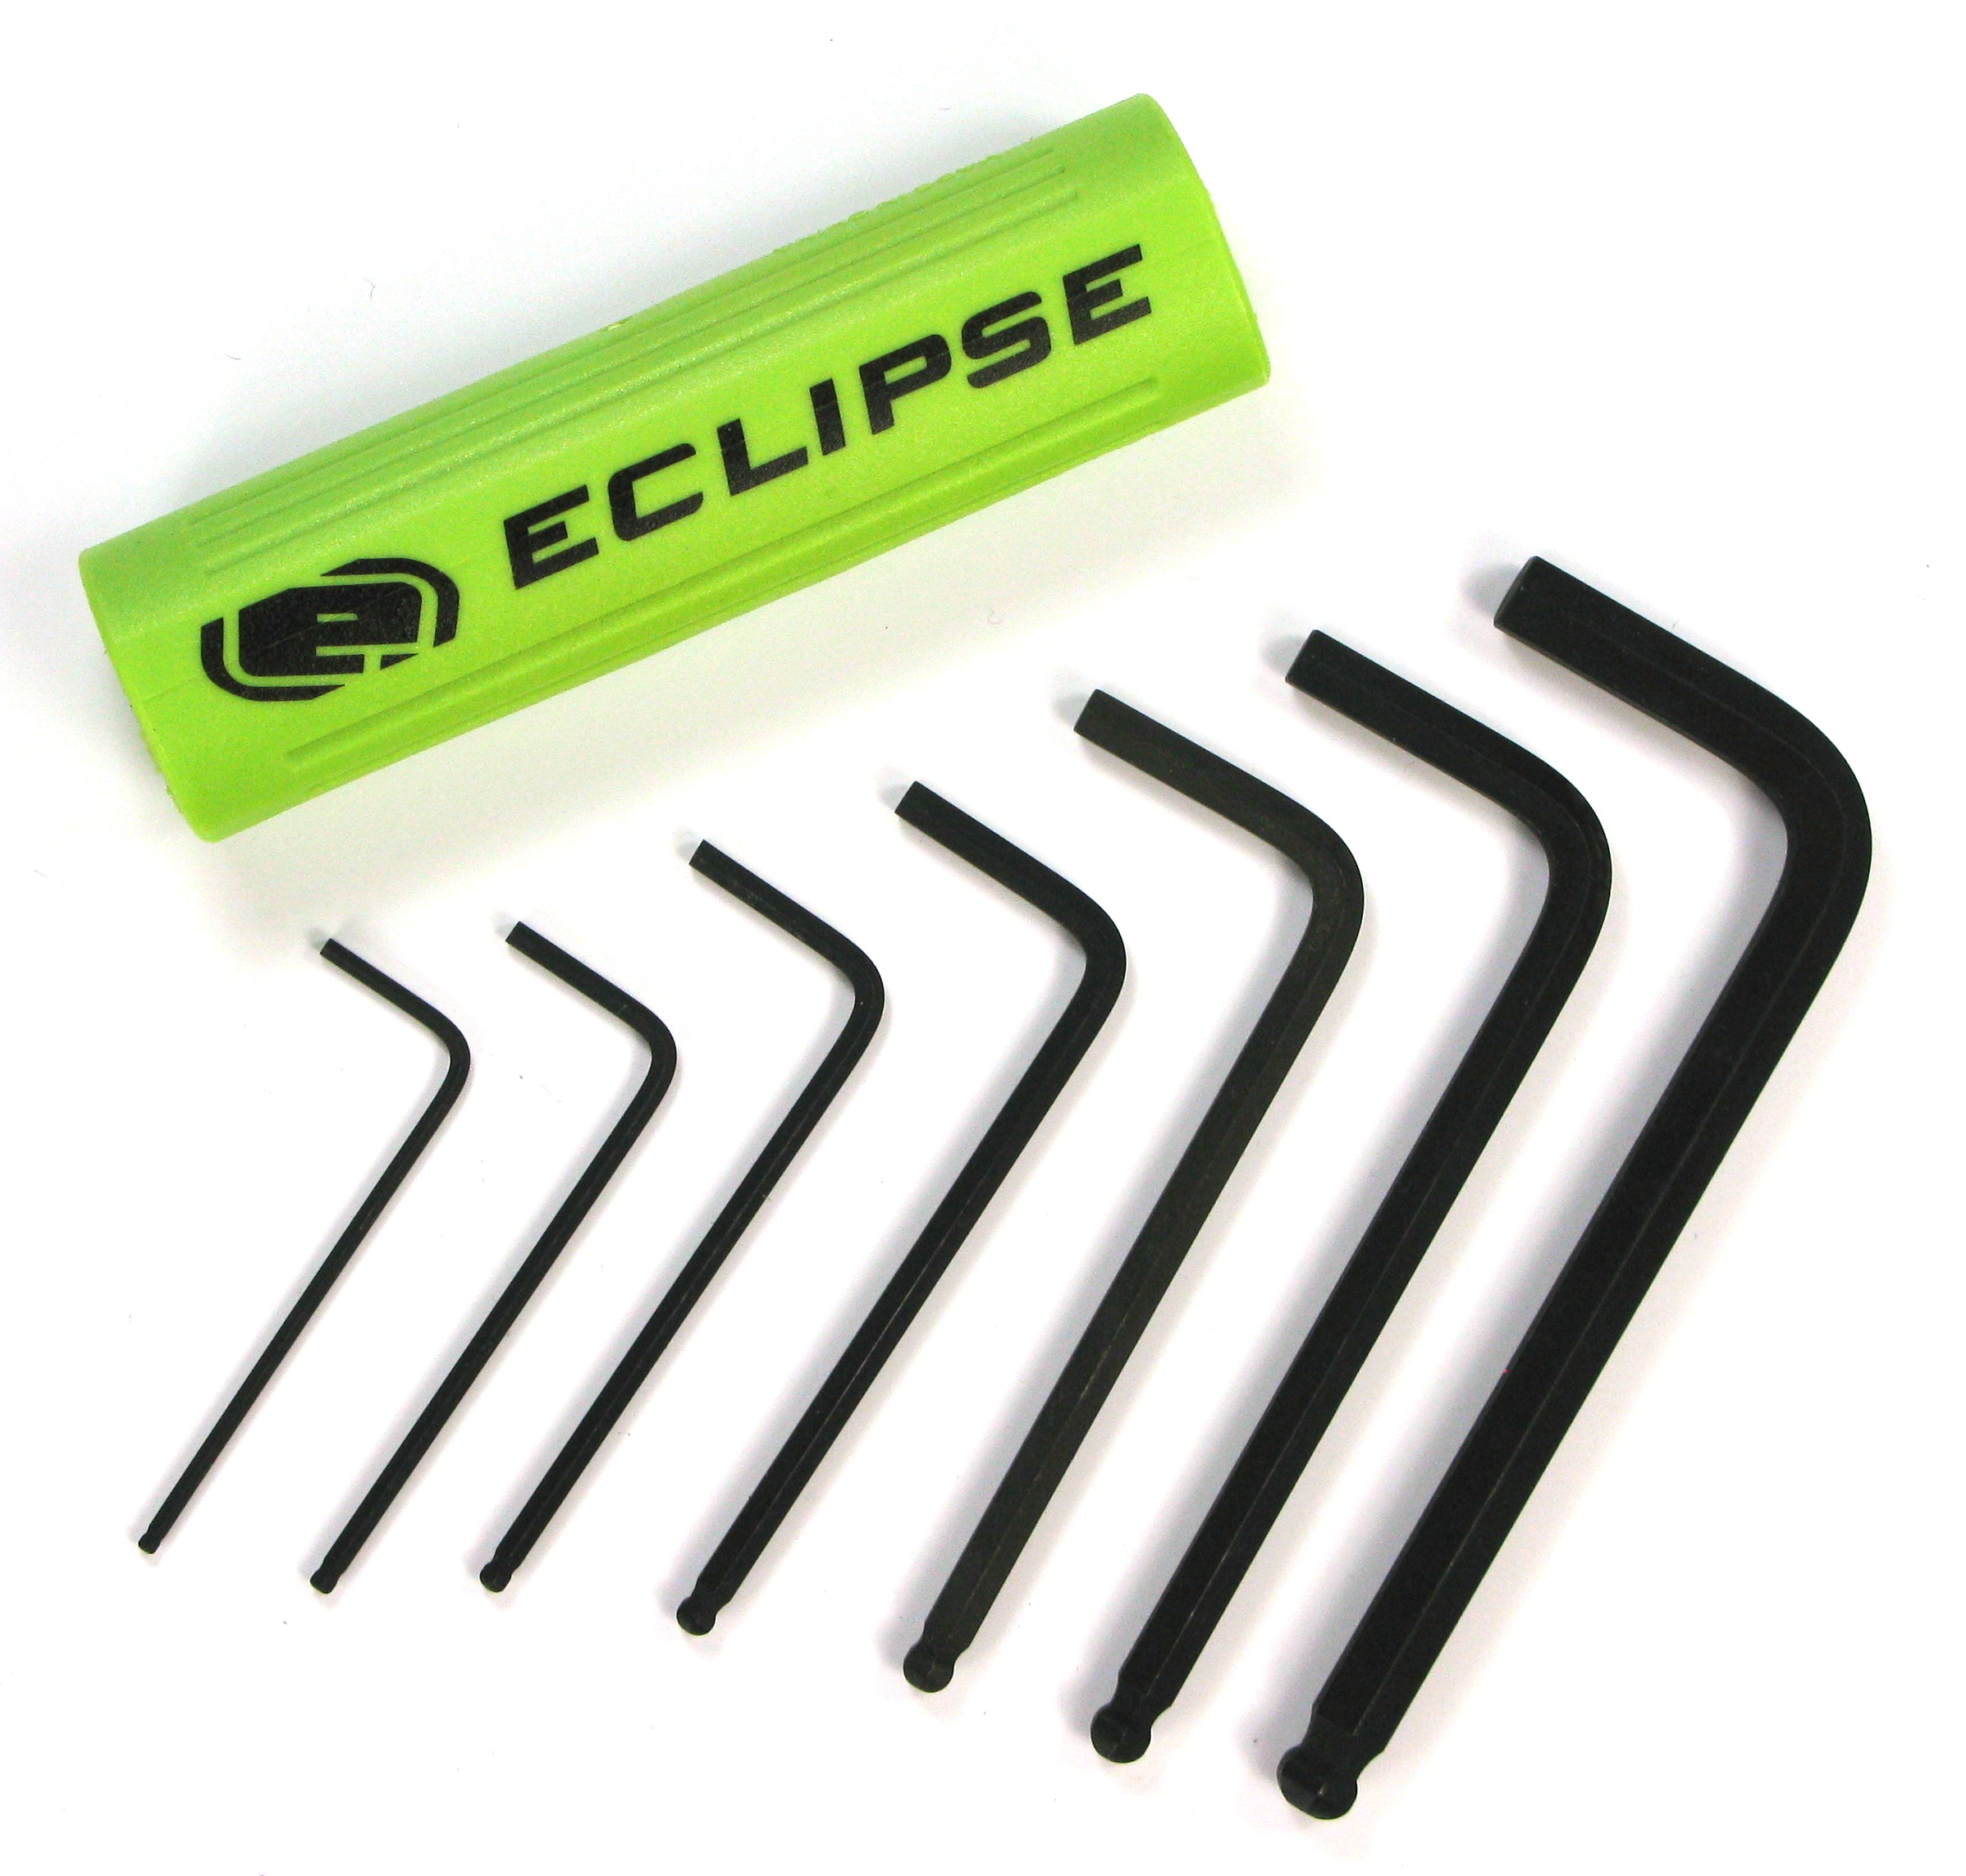 Planet Eclipse Tool Tube / Allen Key Set - Lime